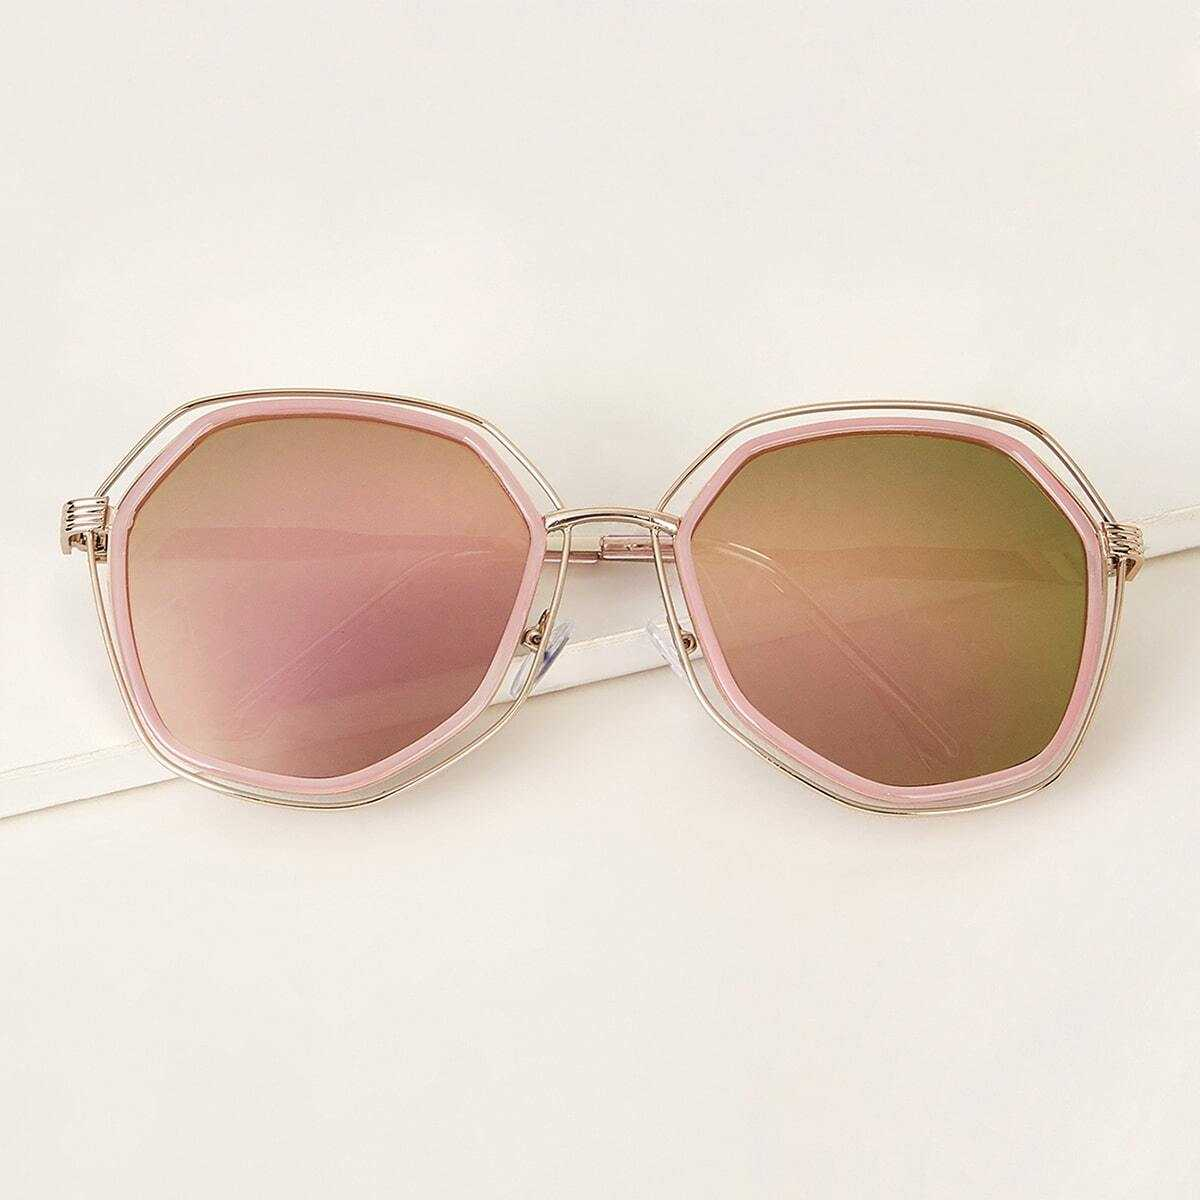 Irregular Frame Tinted Lens Sunglasses in Pink by ROMWE on GOOFASH